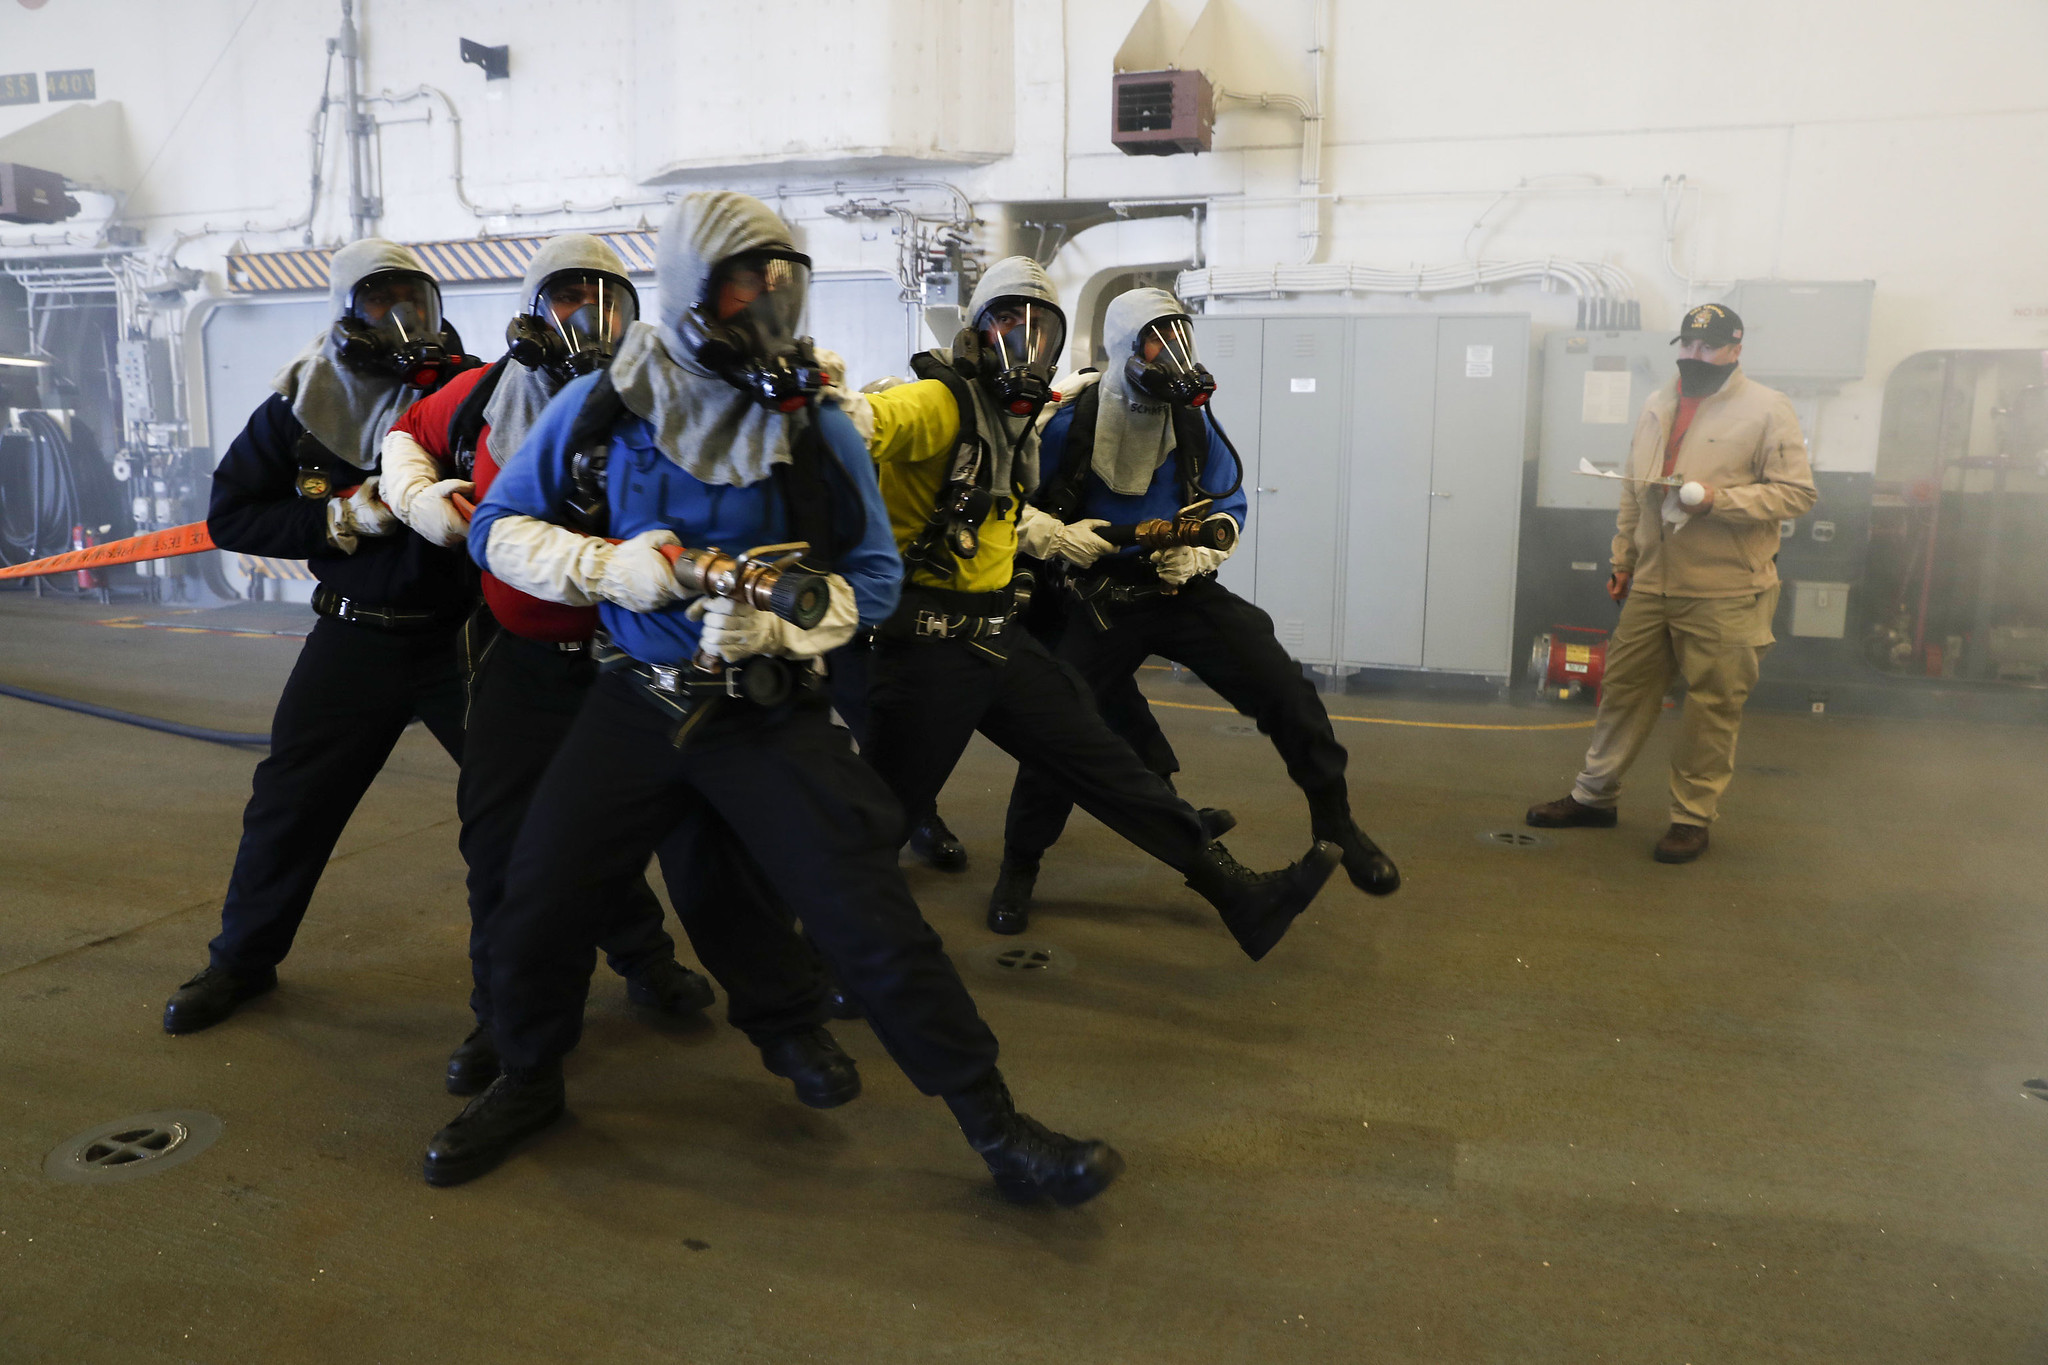 Aviation boatswain's mates (handling) simulate approaching a fire during an aircraft firefighting drill in the hangar bay of the amphibious assault ship USS Tripoli (LHA 7), Aug. 31, 2020, in the Pacific Ocean. (MC1 Christopher B. Janik/Navy)